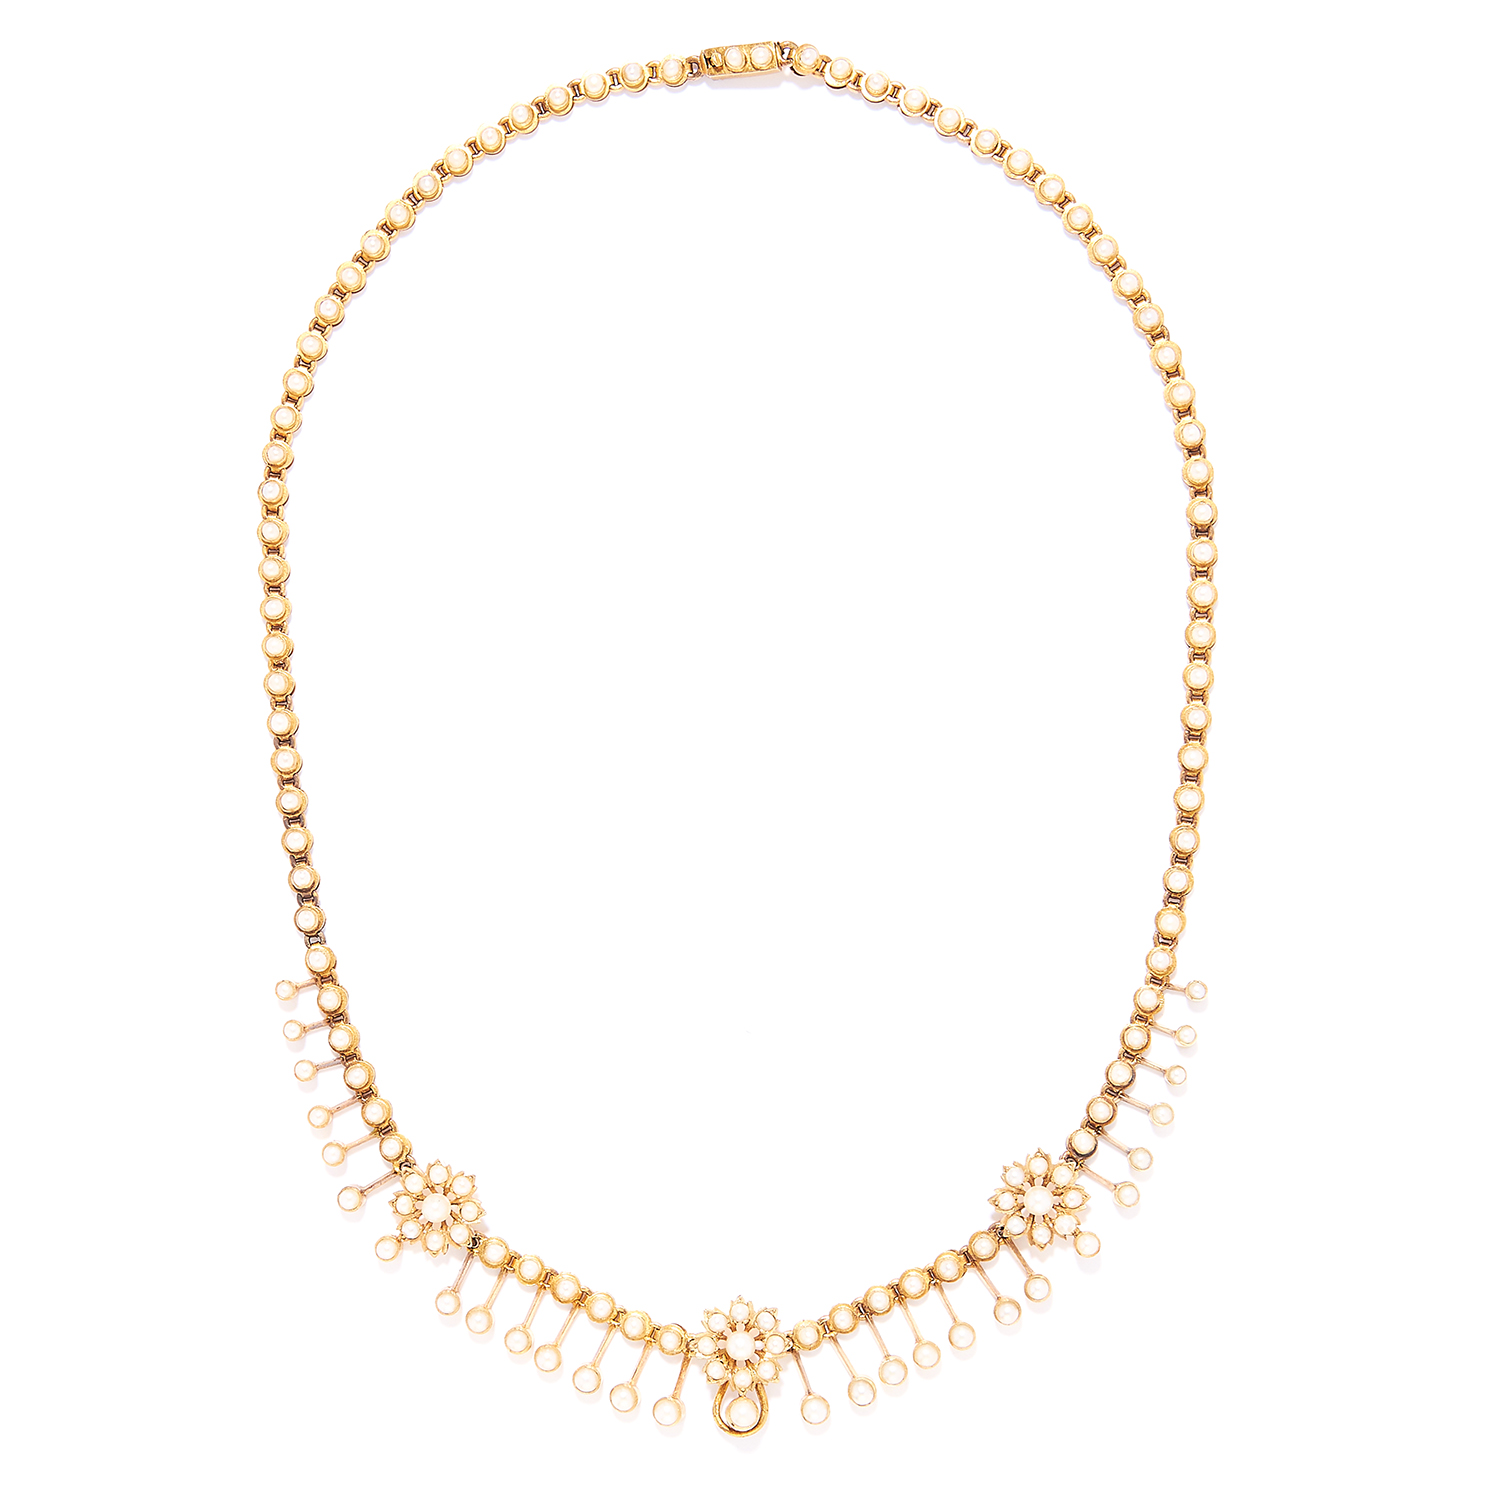 Los 18 - ANTIQUE PEARL NECKLACE in high carat yellow gold, set with seed pearls in foliate fringe design,